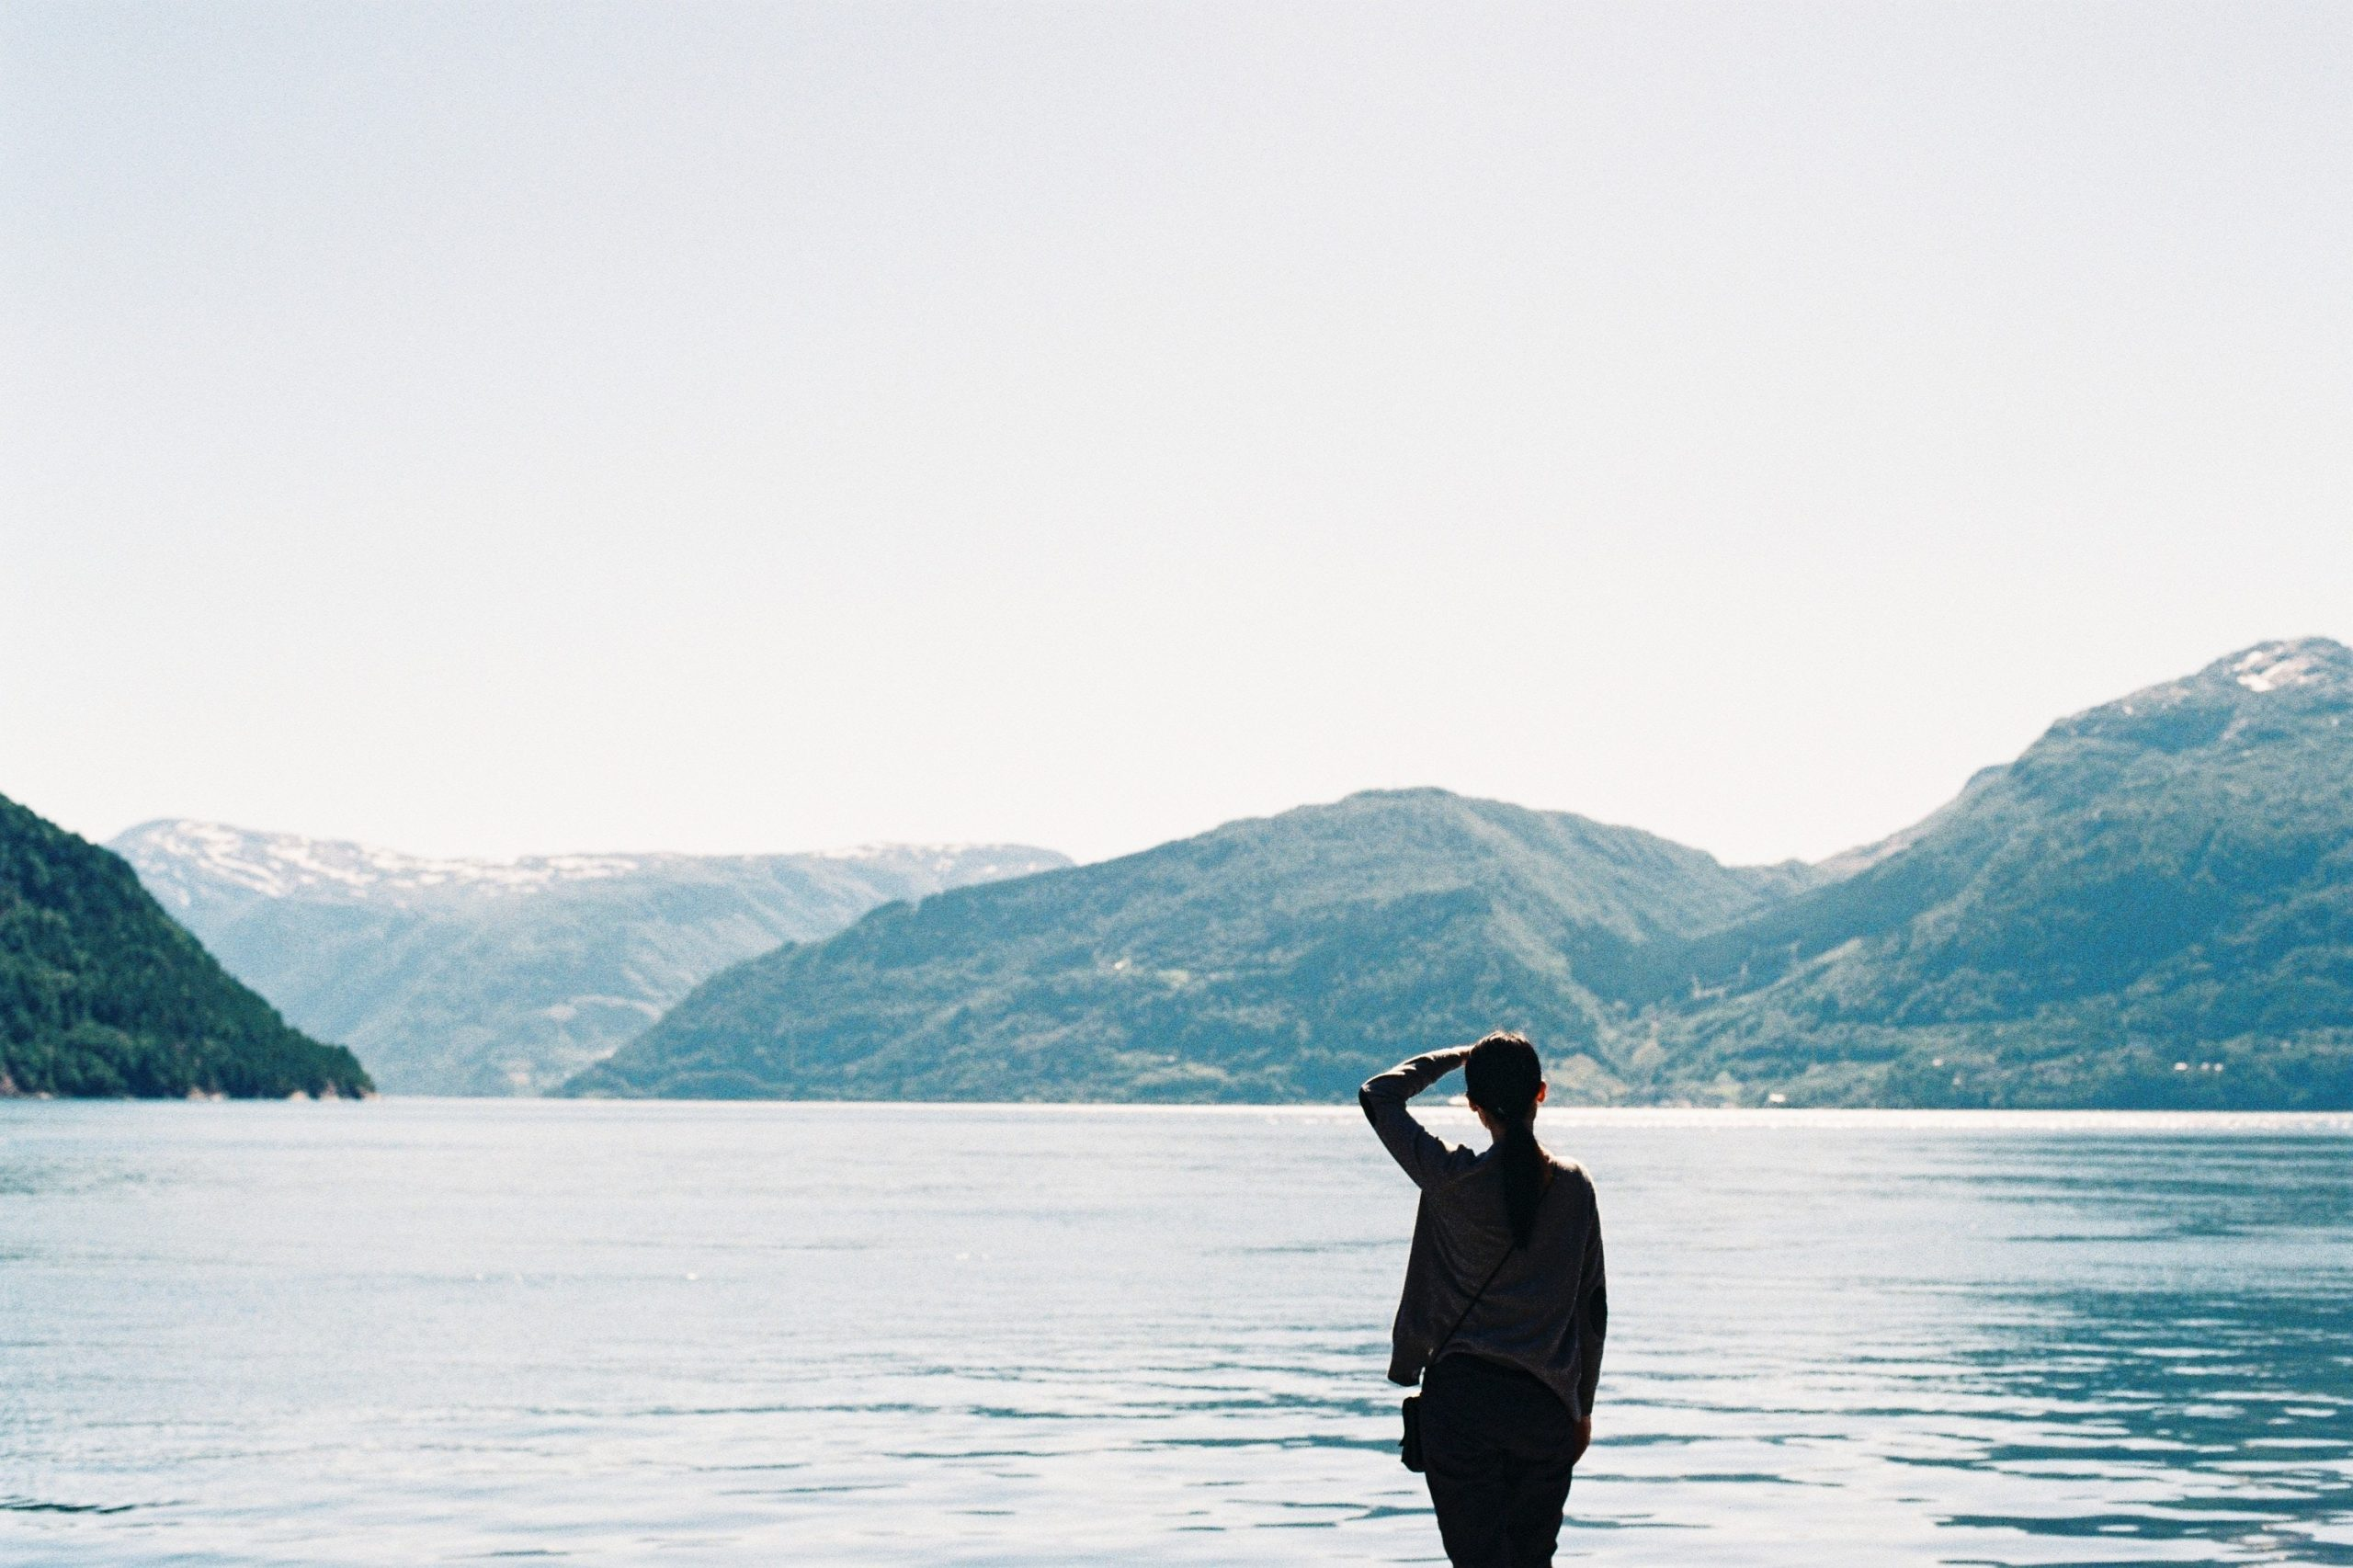 Woman looking out at a large body of water